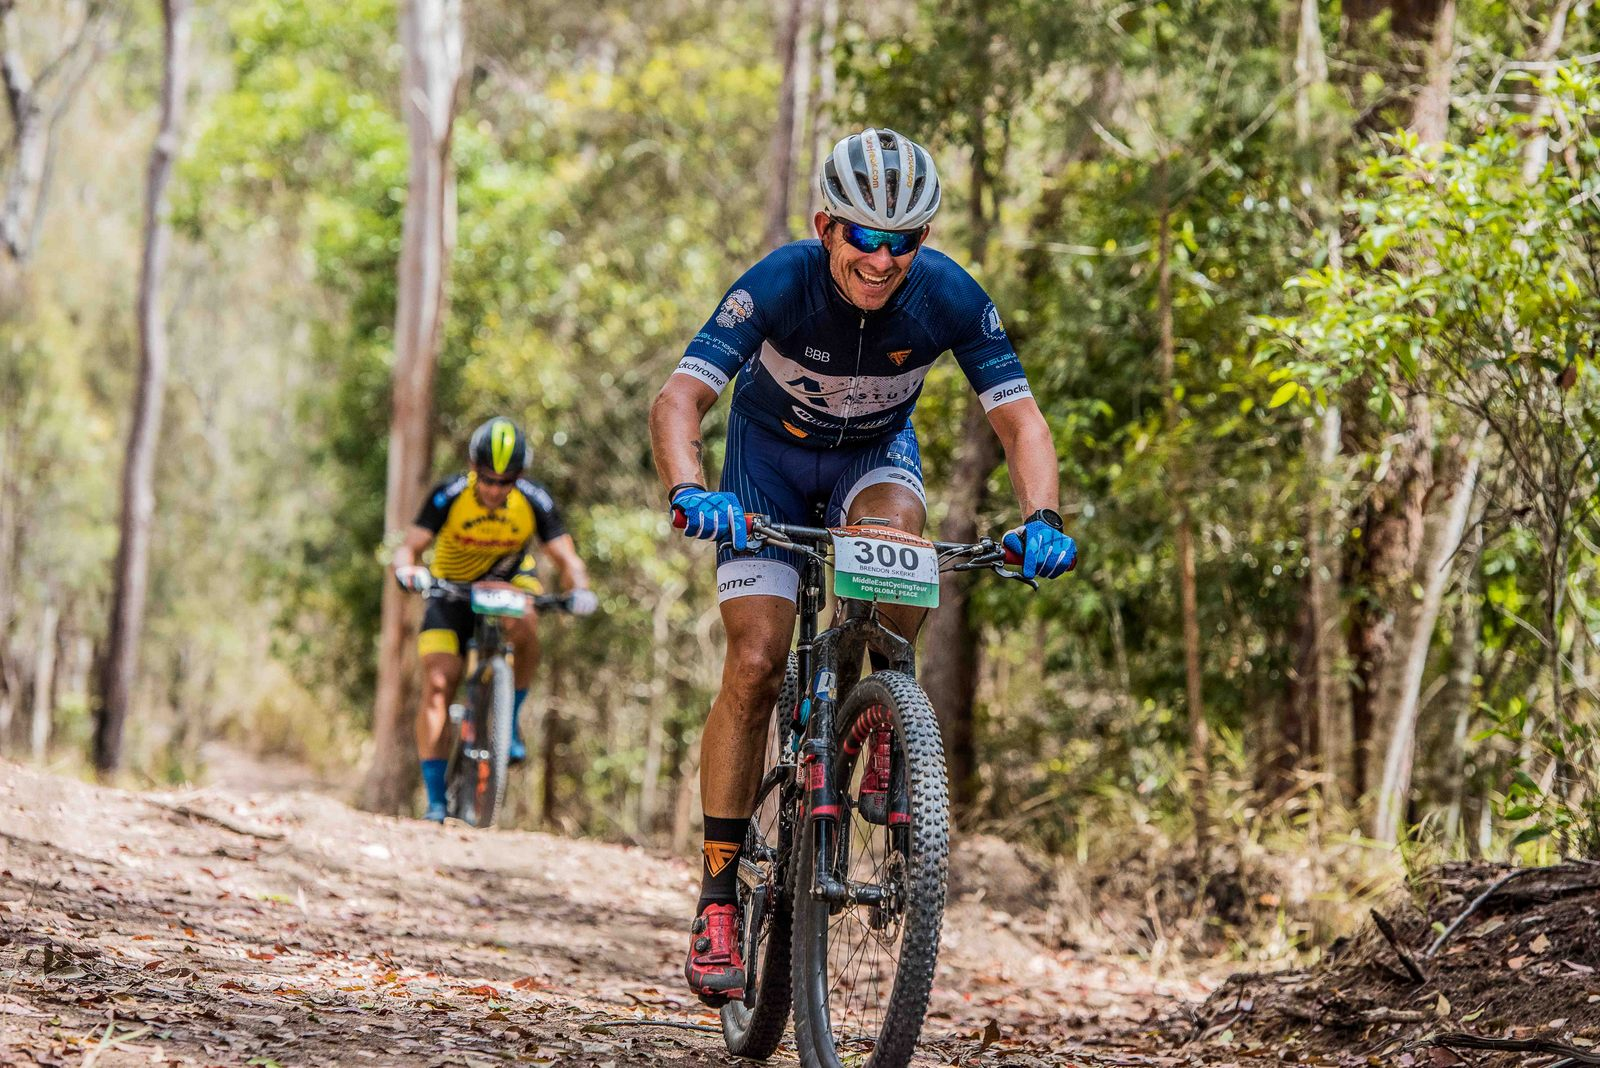 Stage Plan 1+2: Ringers Rest in Mareeba to host first two Crocodile Trophy stages in 2019